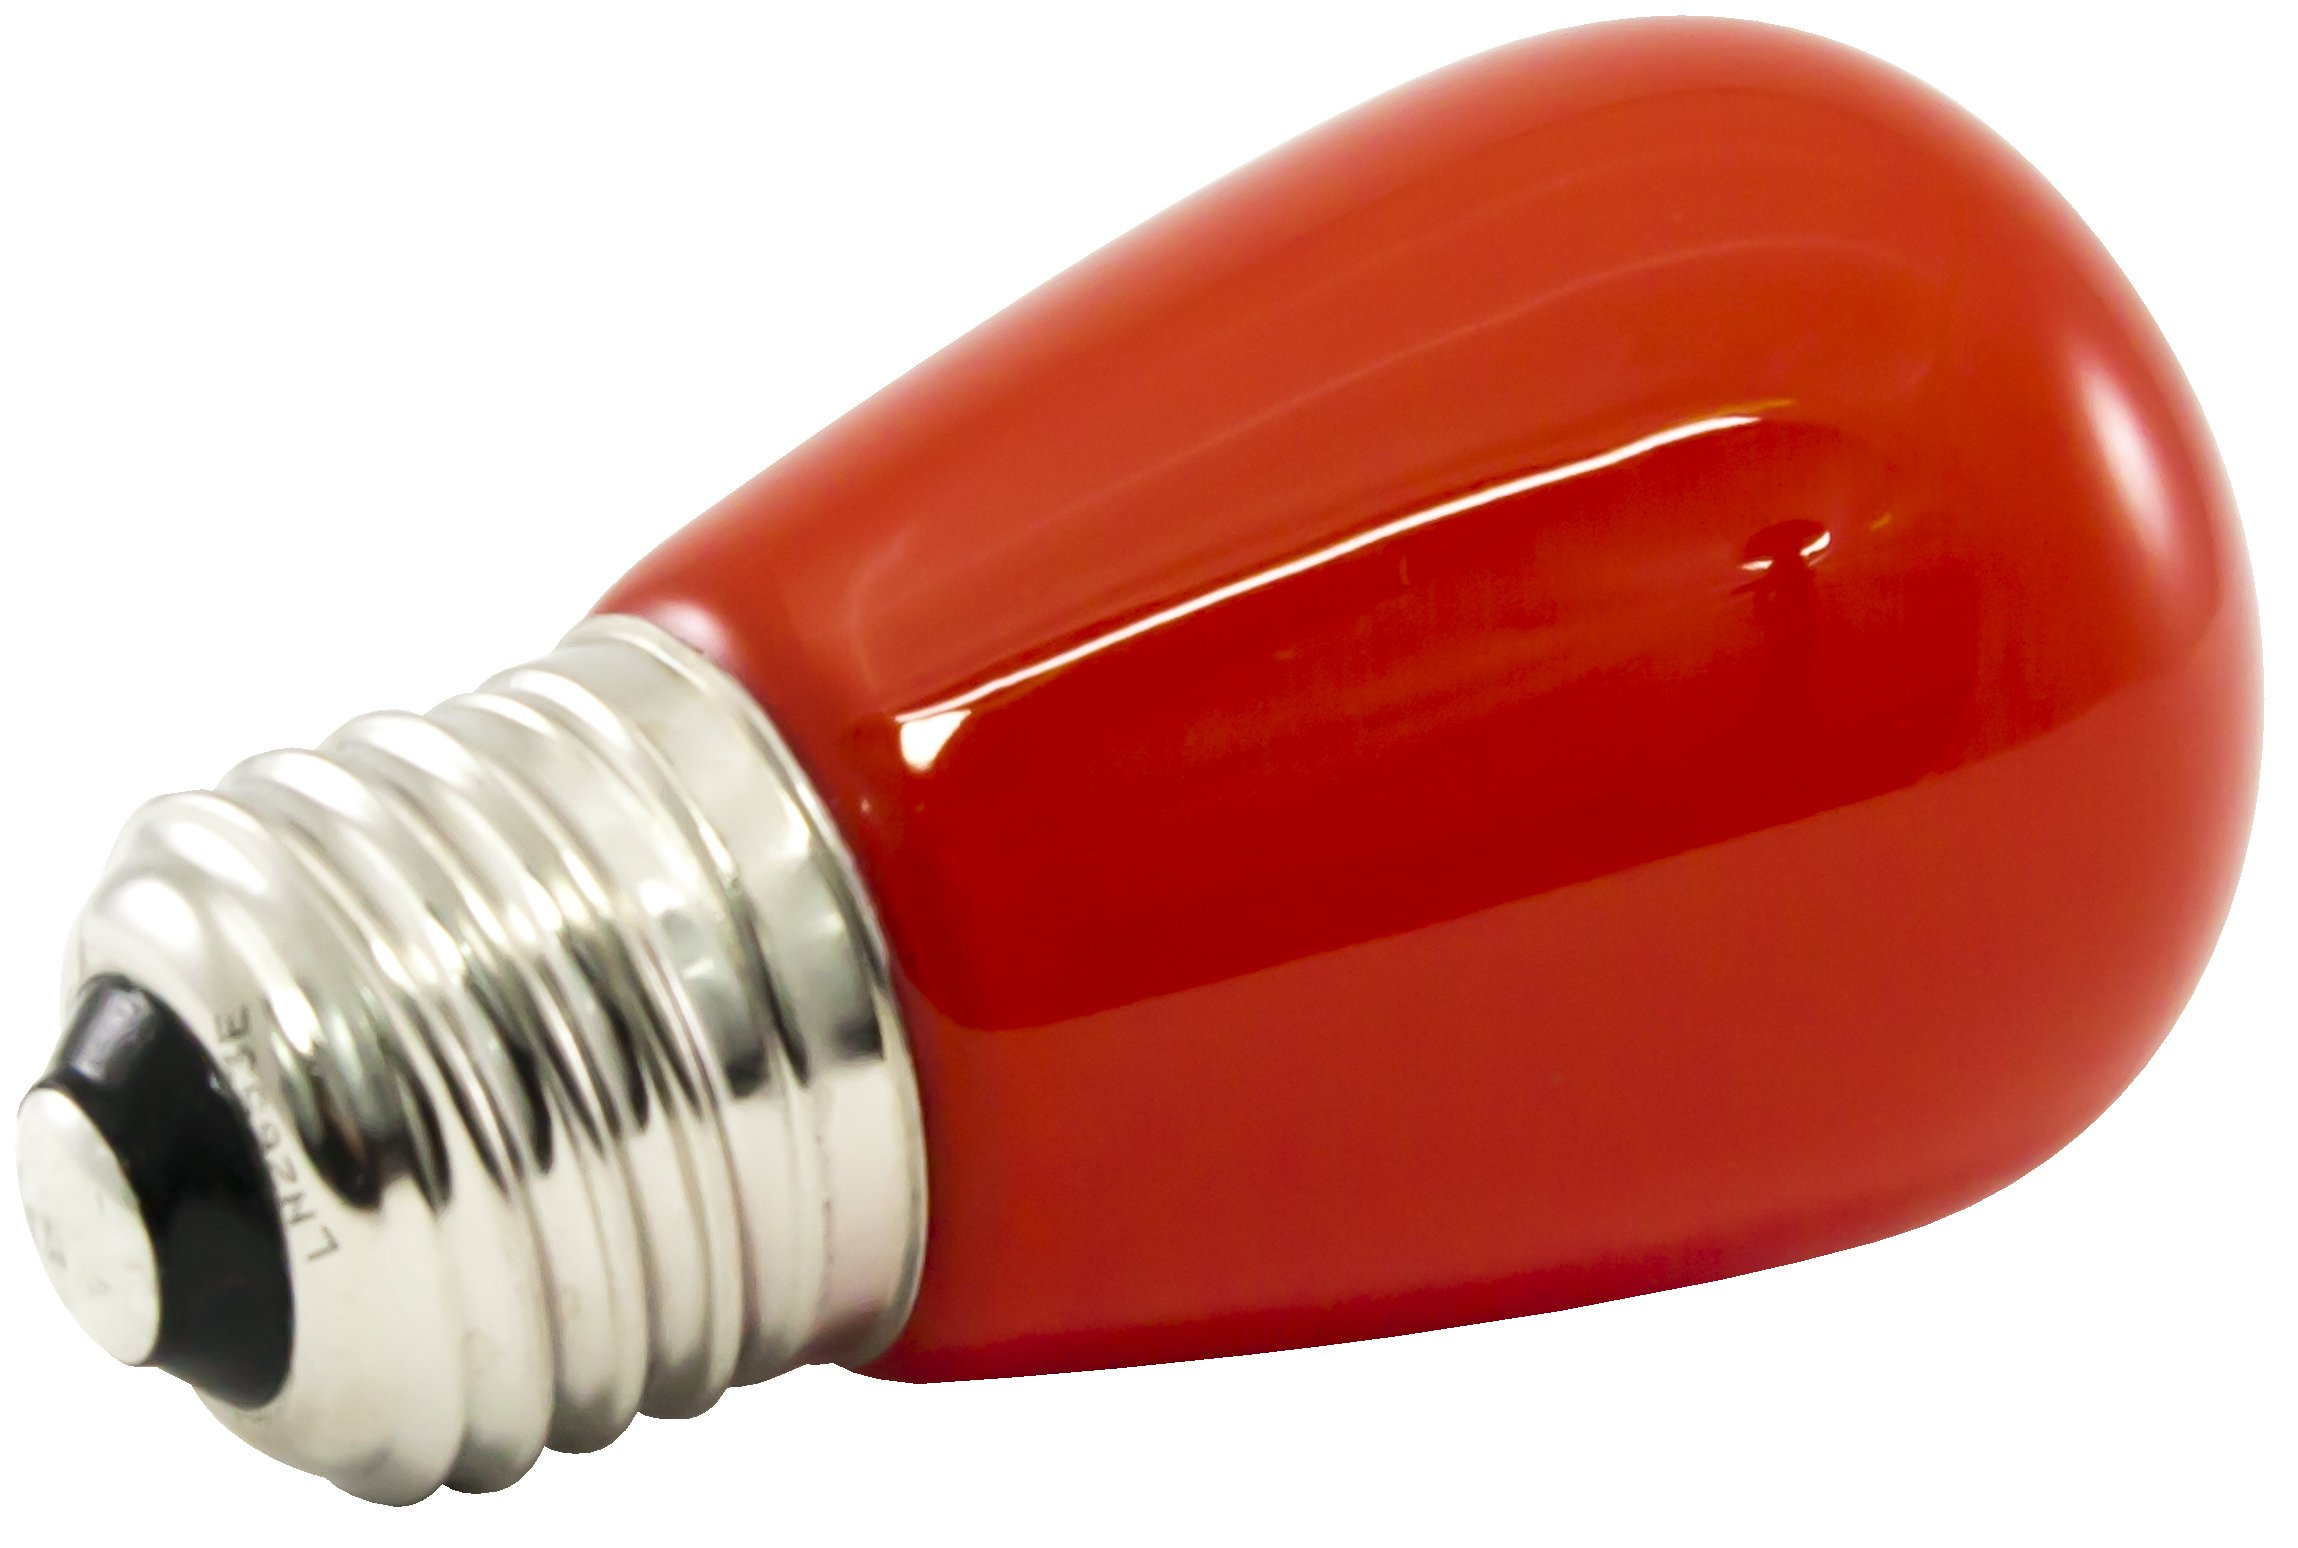 American Lighting PS14F-E26-RE Professional LED S14 Light Bulbs, Dimmable, Ceramic Lens, 1.4-Watts, 120V, Red, 25-Pack